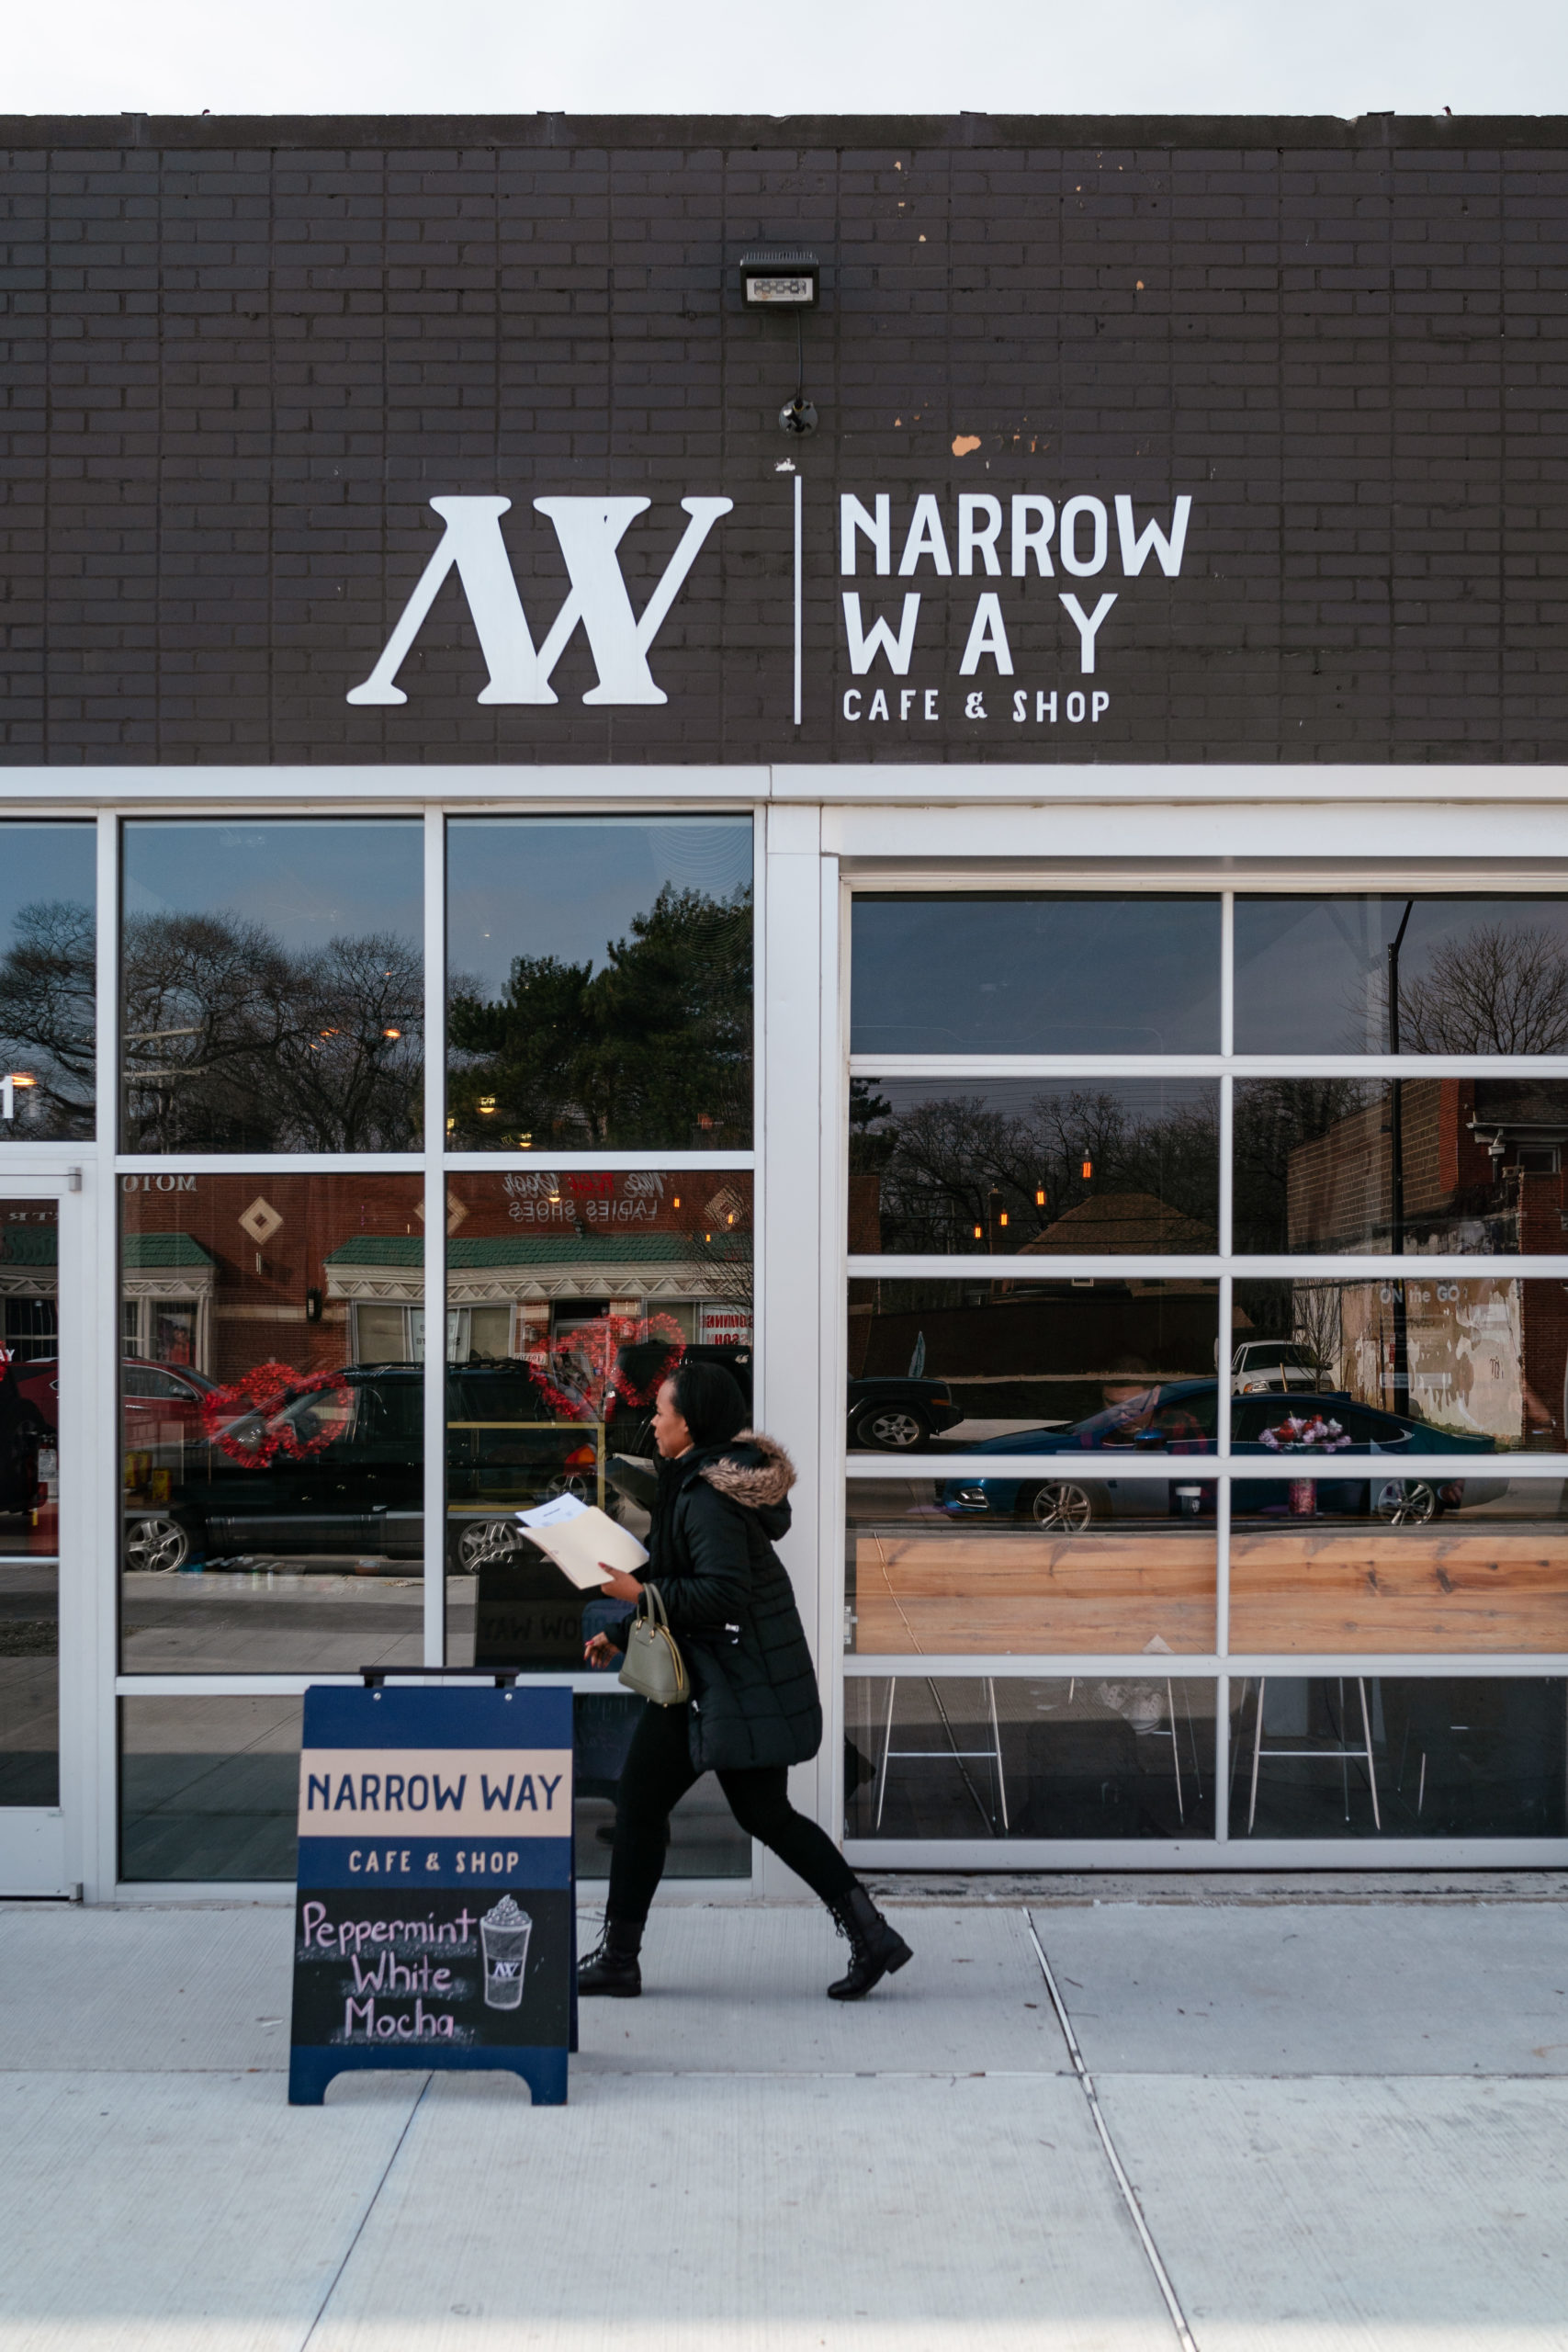 Narrow Way Cafe & Shop